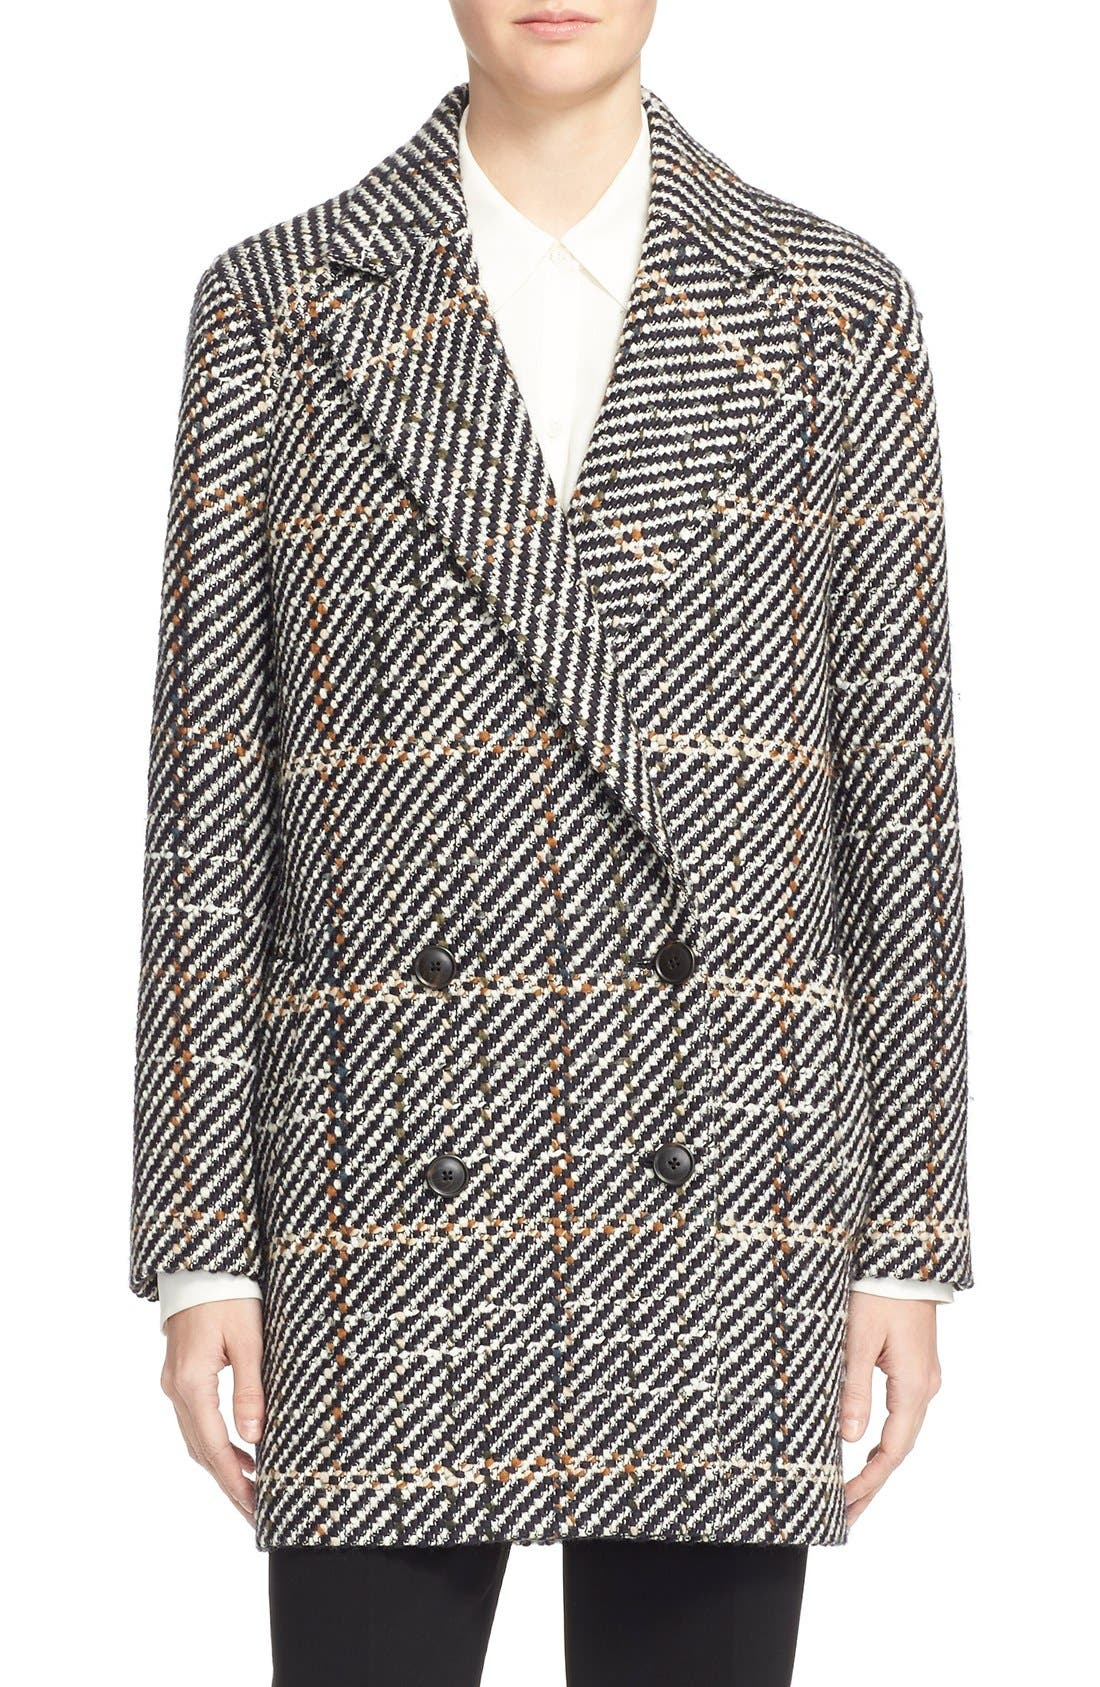 Alternate Image 1 Selected - Theory Graphic Tweed Coat